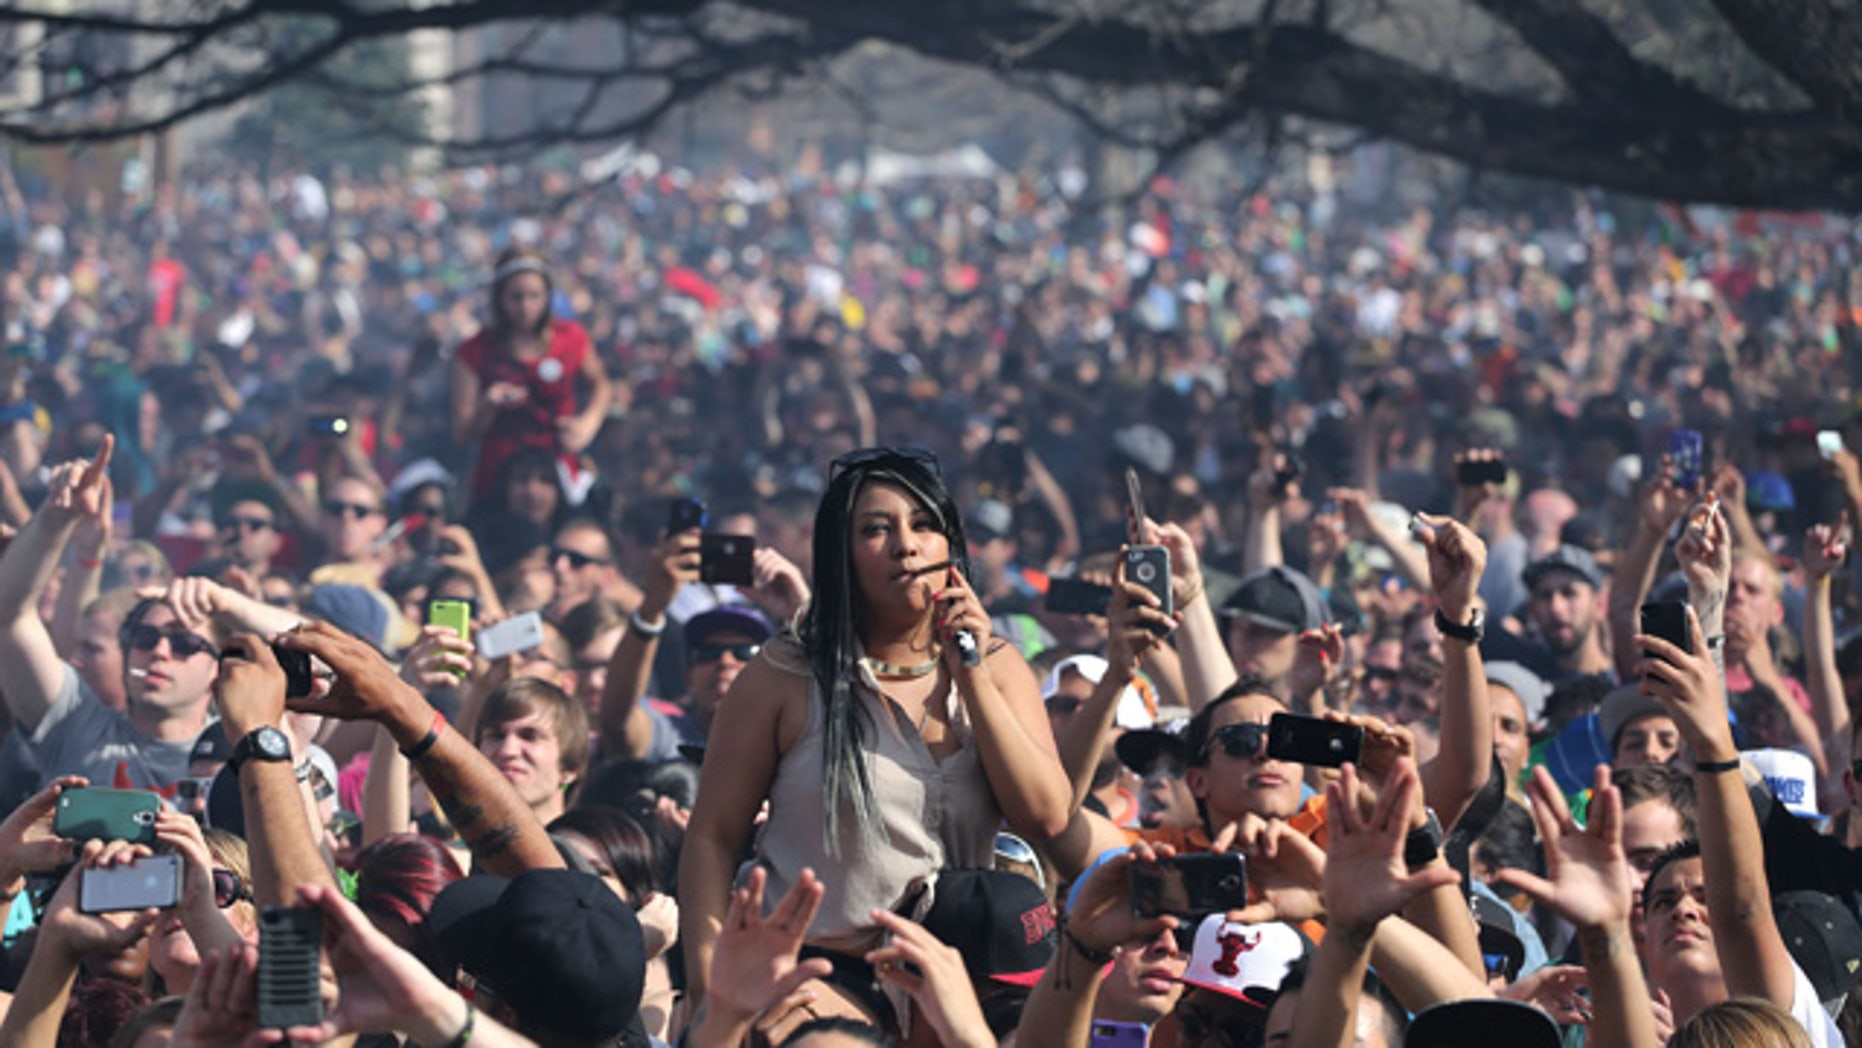 April 20, 2014: Partygoers listen to live music on the second of two days at the annual 4/20 marijuana festival in Denver. The annual event is the first 420 marijuana celebration since retail marijuana stores began selling in January 2014. (AP Photo/Brennan Linsley)